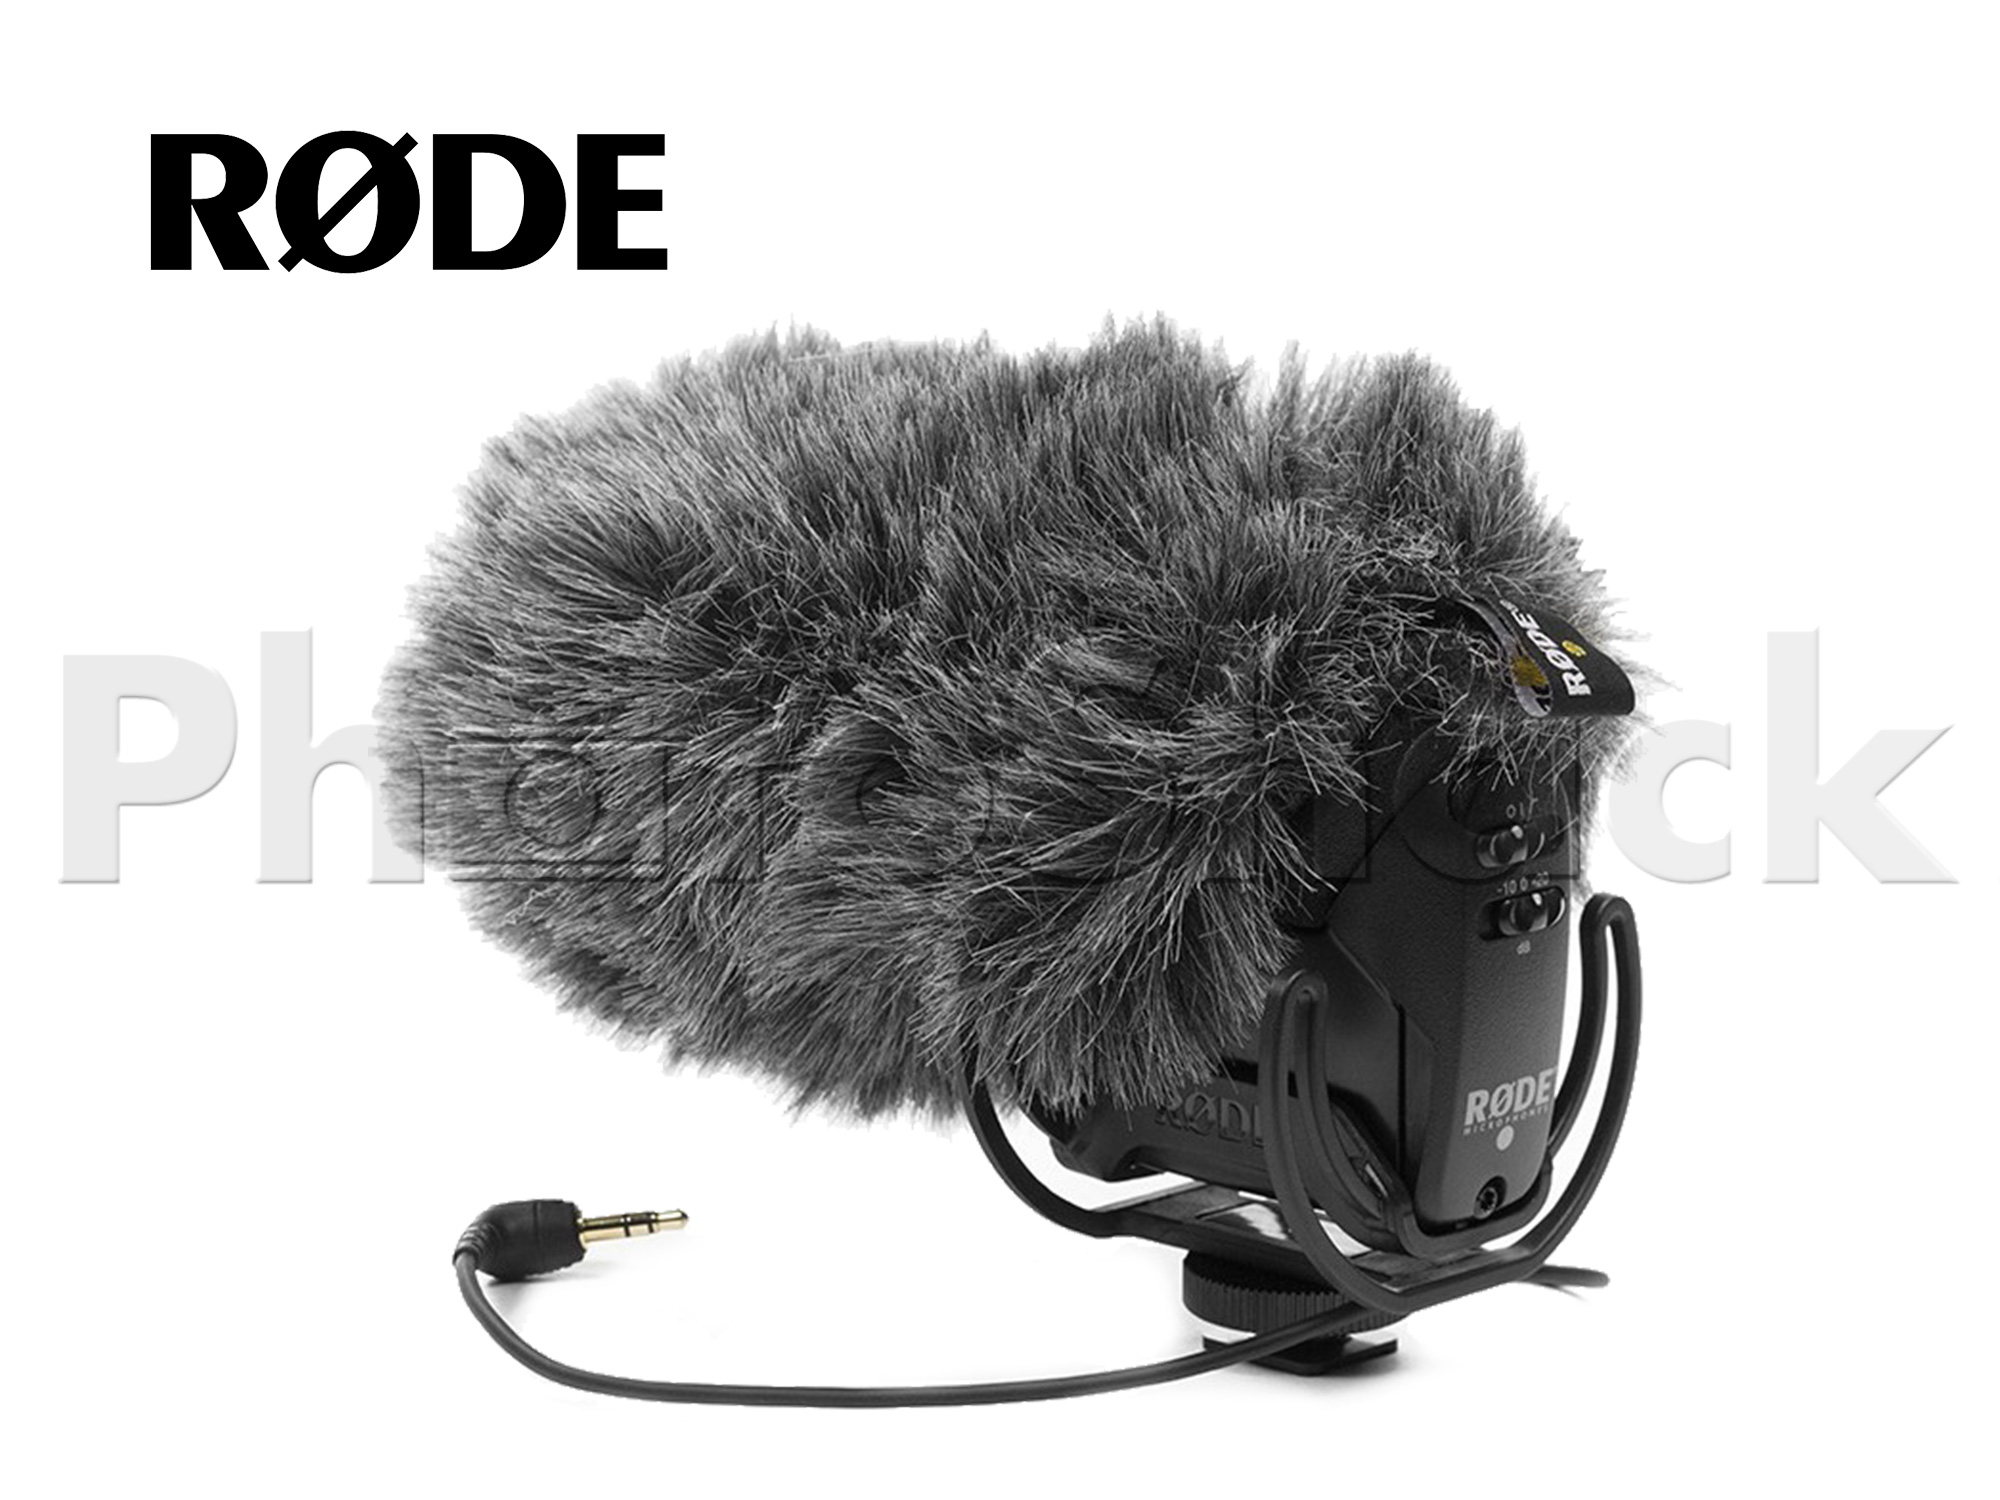 Rode DeadCat Wind Shield for VideoMicPro w/ Lyre Shock-mount